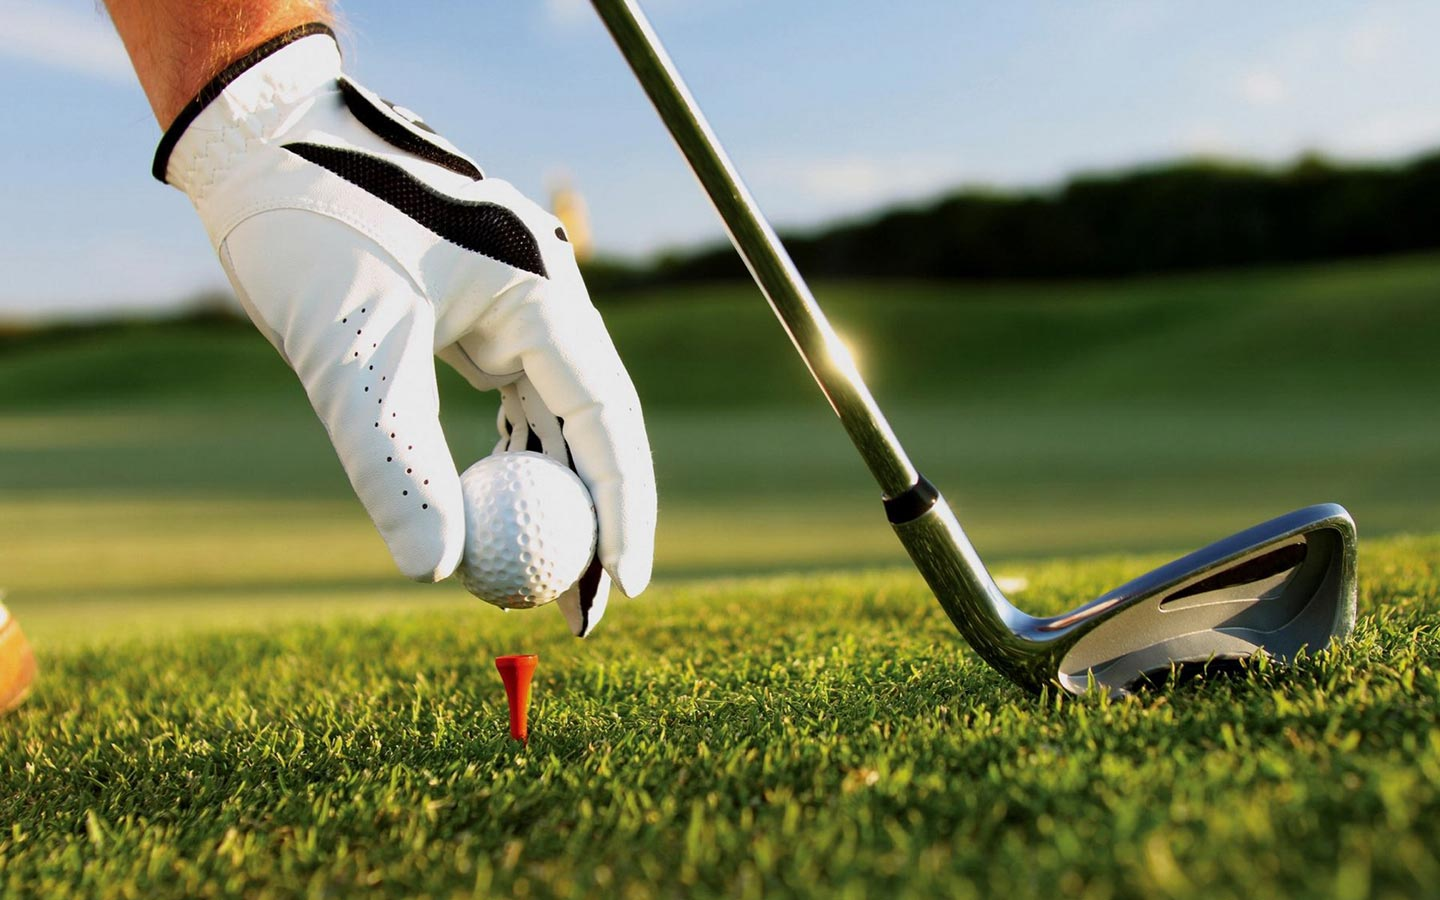 golf-wallpaper-widescreen-equipment-hd-wallpapers.jpeg